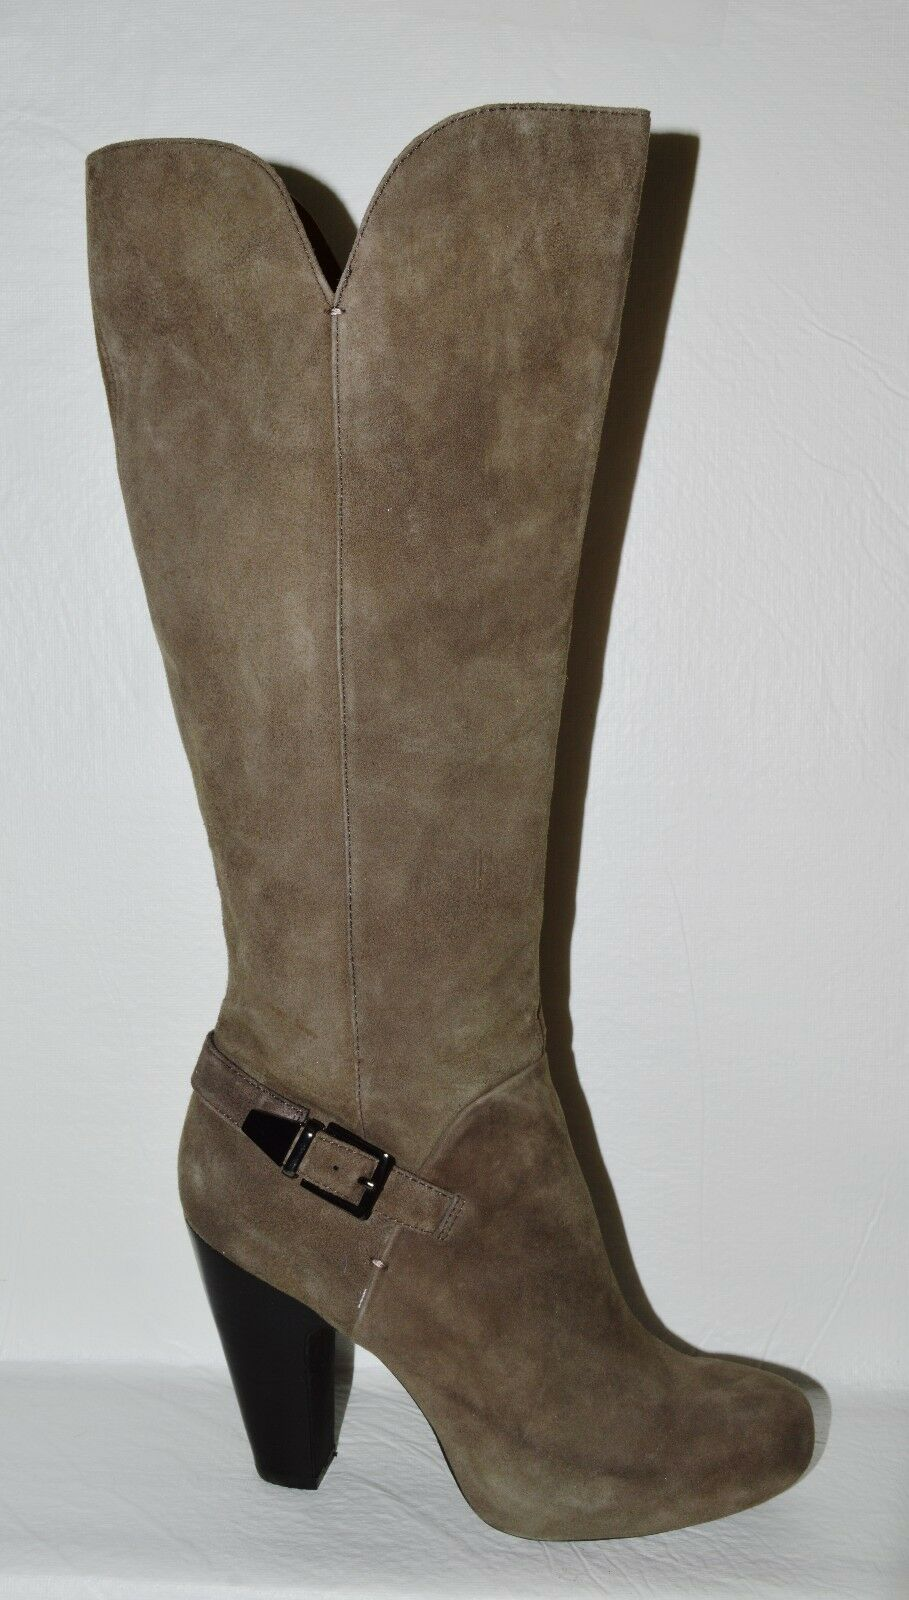 SOFFT NEW SZ 7 M TAUPE SUEDE LEATHER KNEE HIGH BOOTS